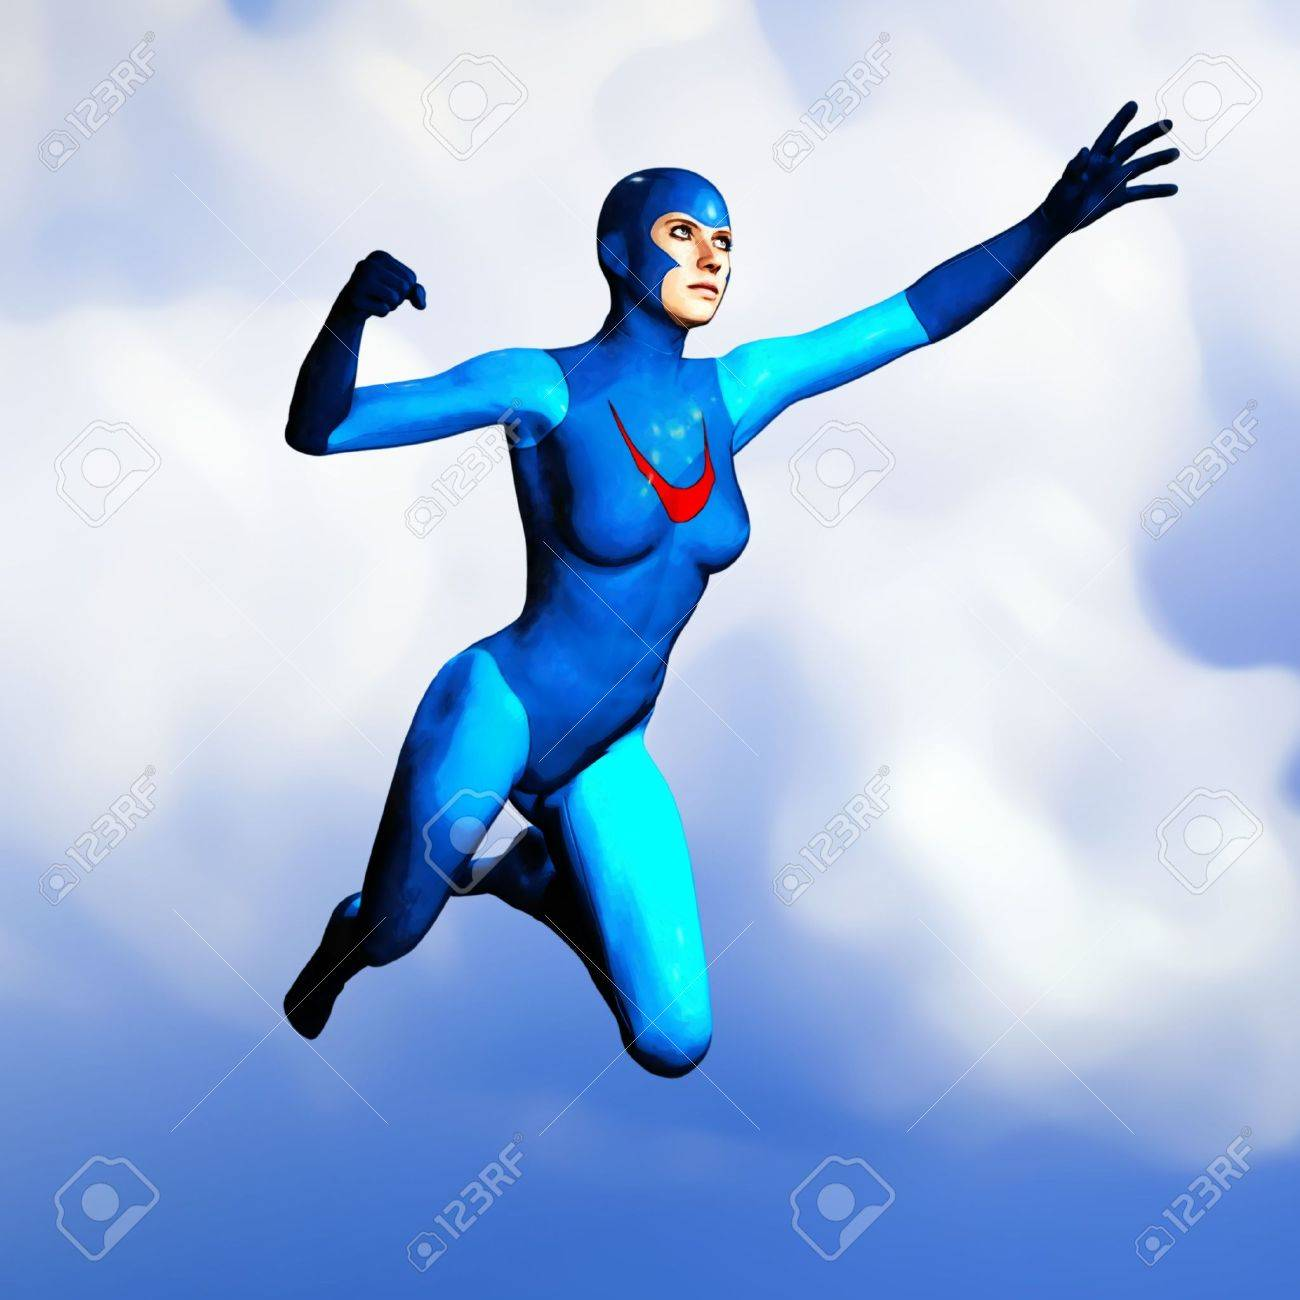 Illustration of a non-specific female superhero in a blue costume, flying through the sky.  Based on an original render by the artist. Stock Illustration - 2732000